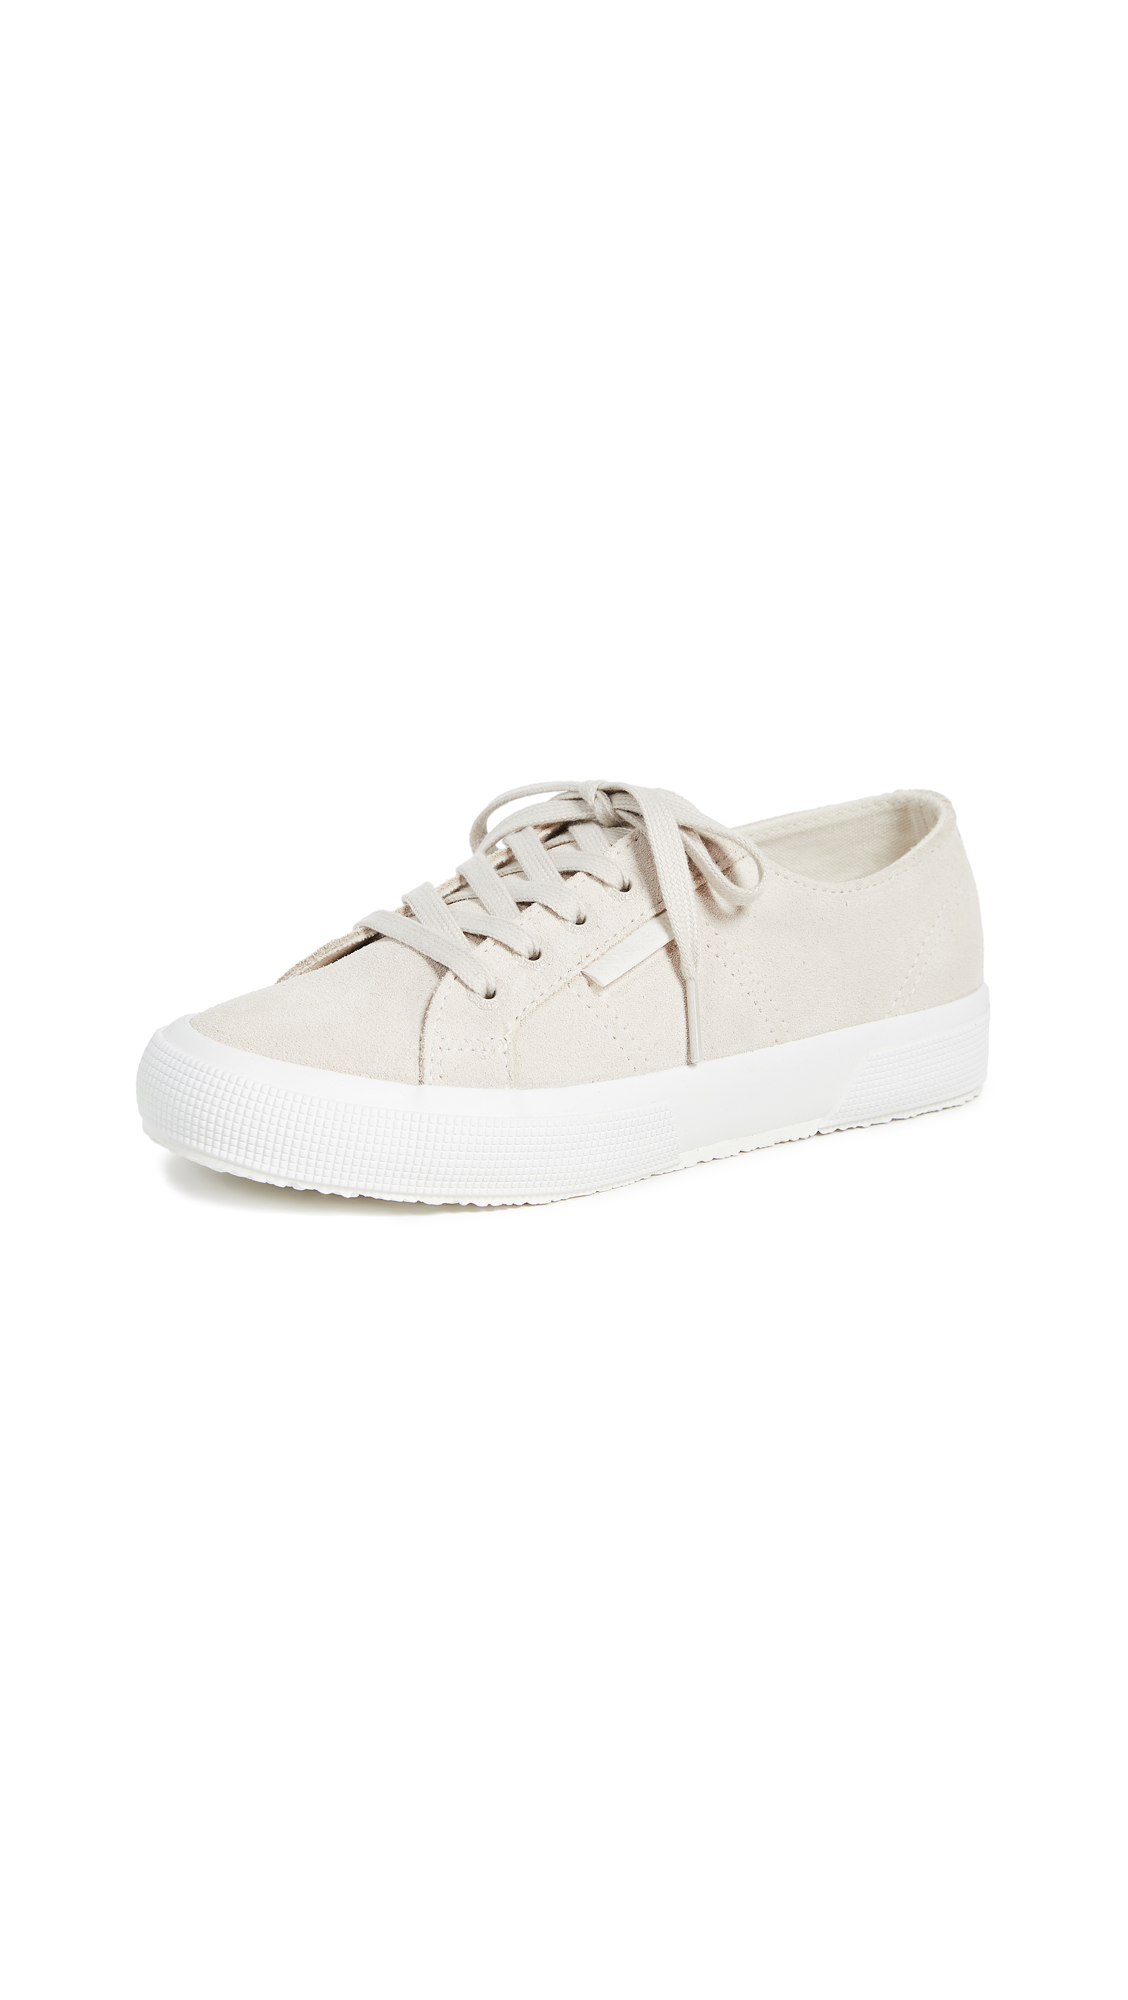 Superga 2750 Suecotlinu Sneakers - Cafe Noir